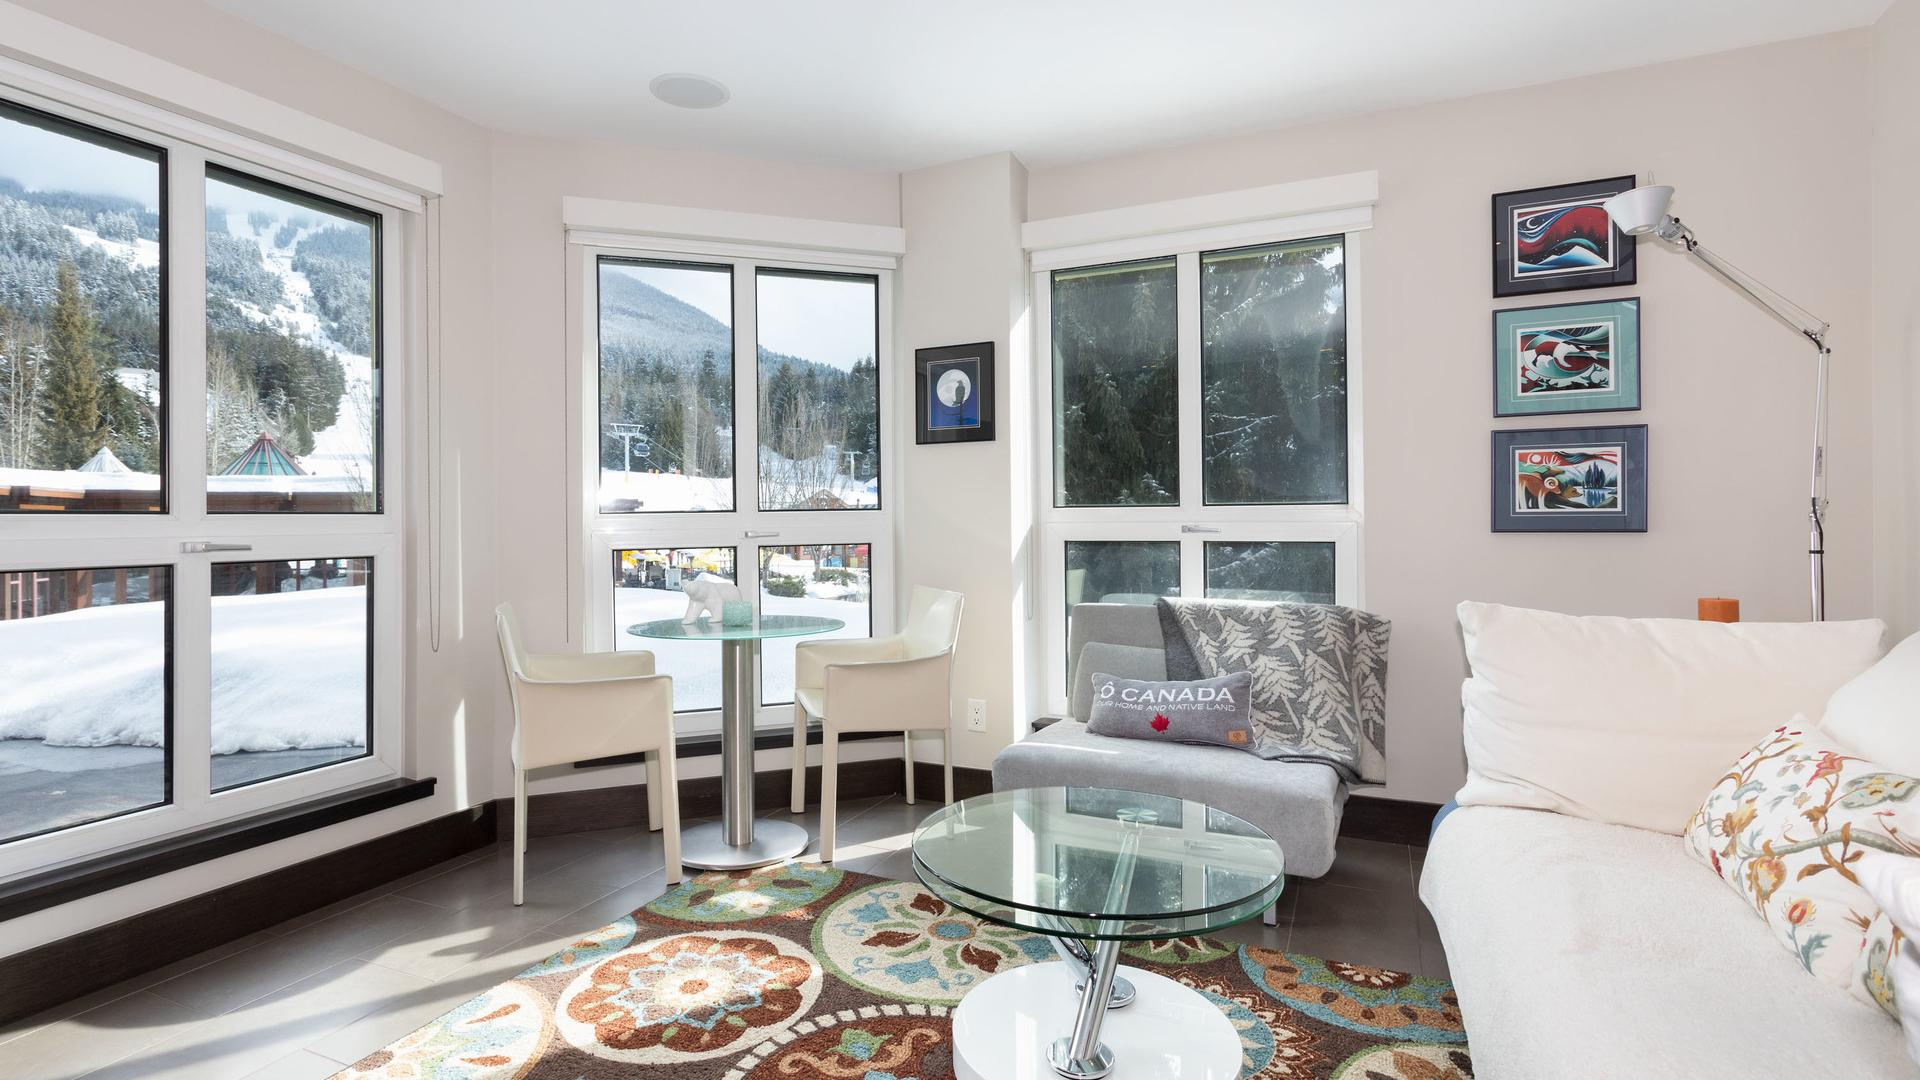 204 - 4557 Blackcomb Way, Benchlands, Whistler